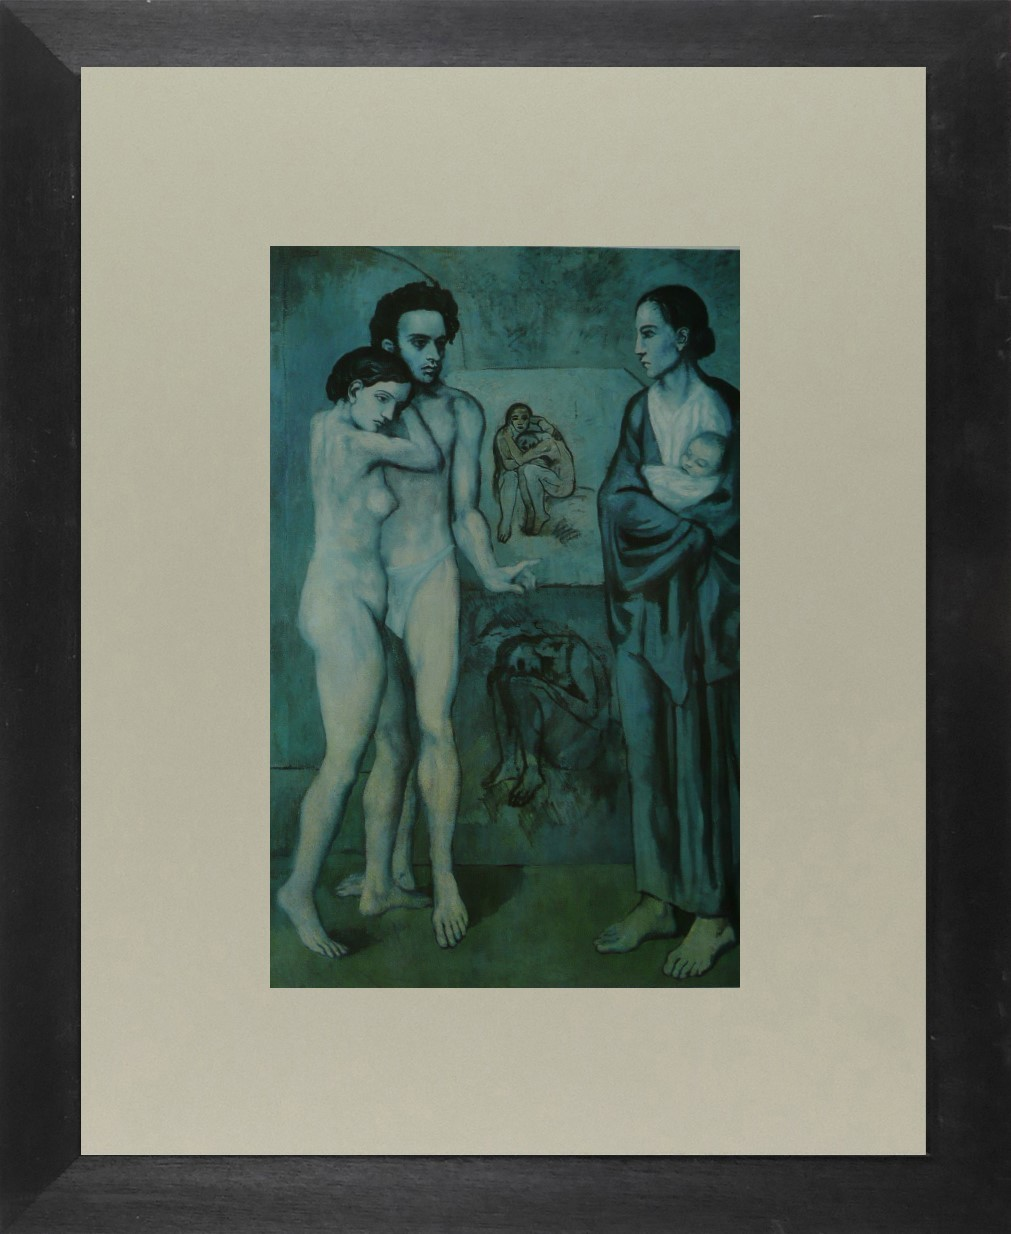 La Vie (3 Figures in blue) - Picasso - Framed Picture 11 x 14